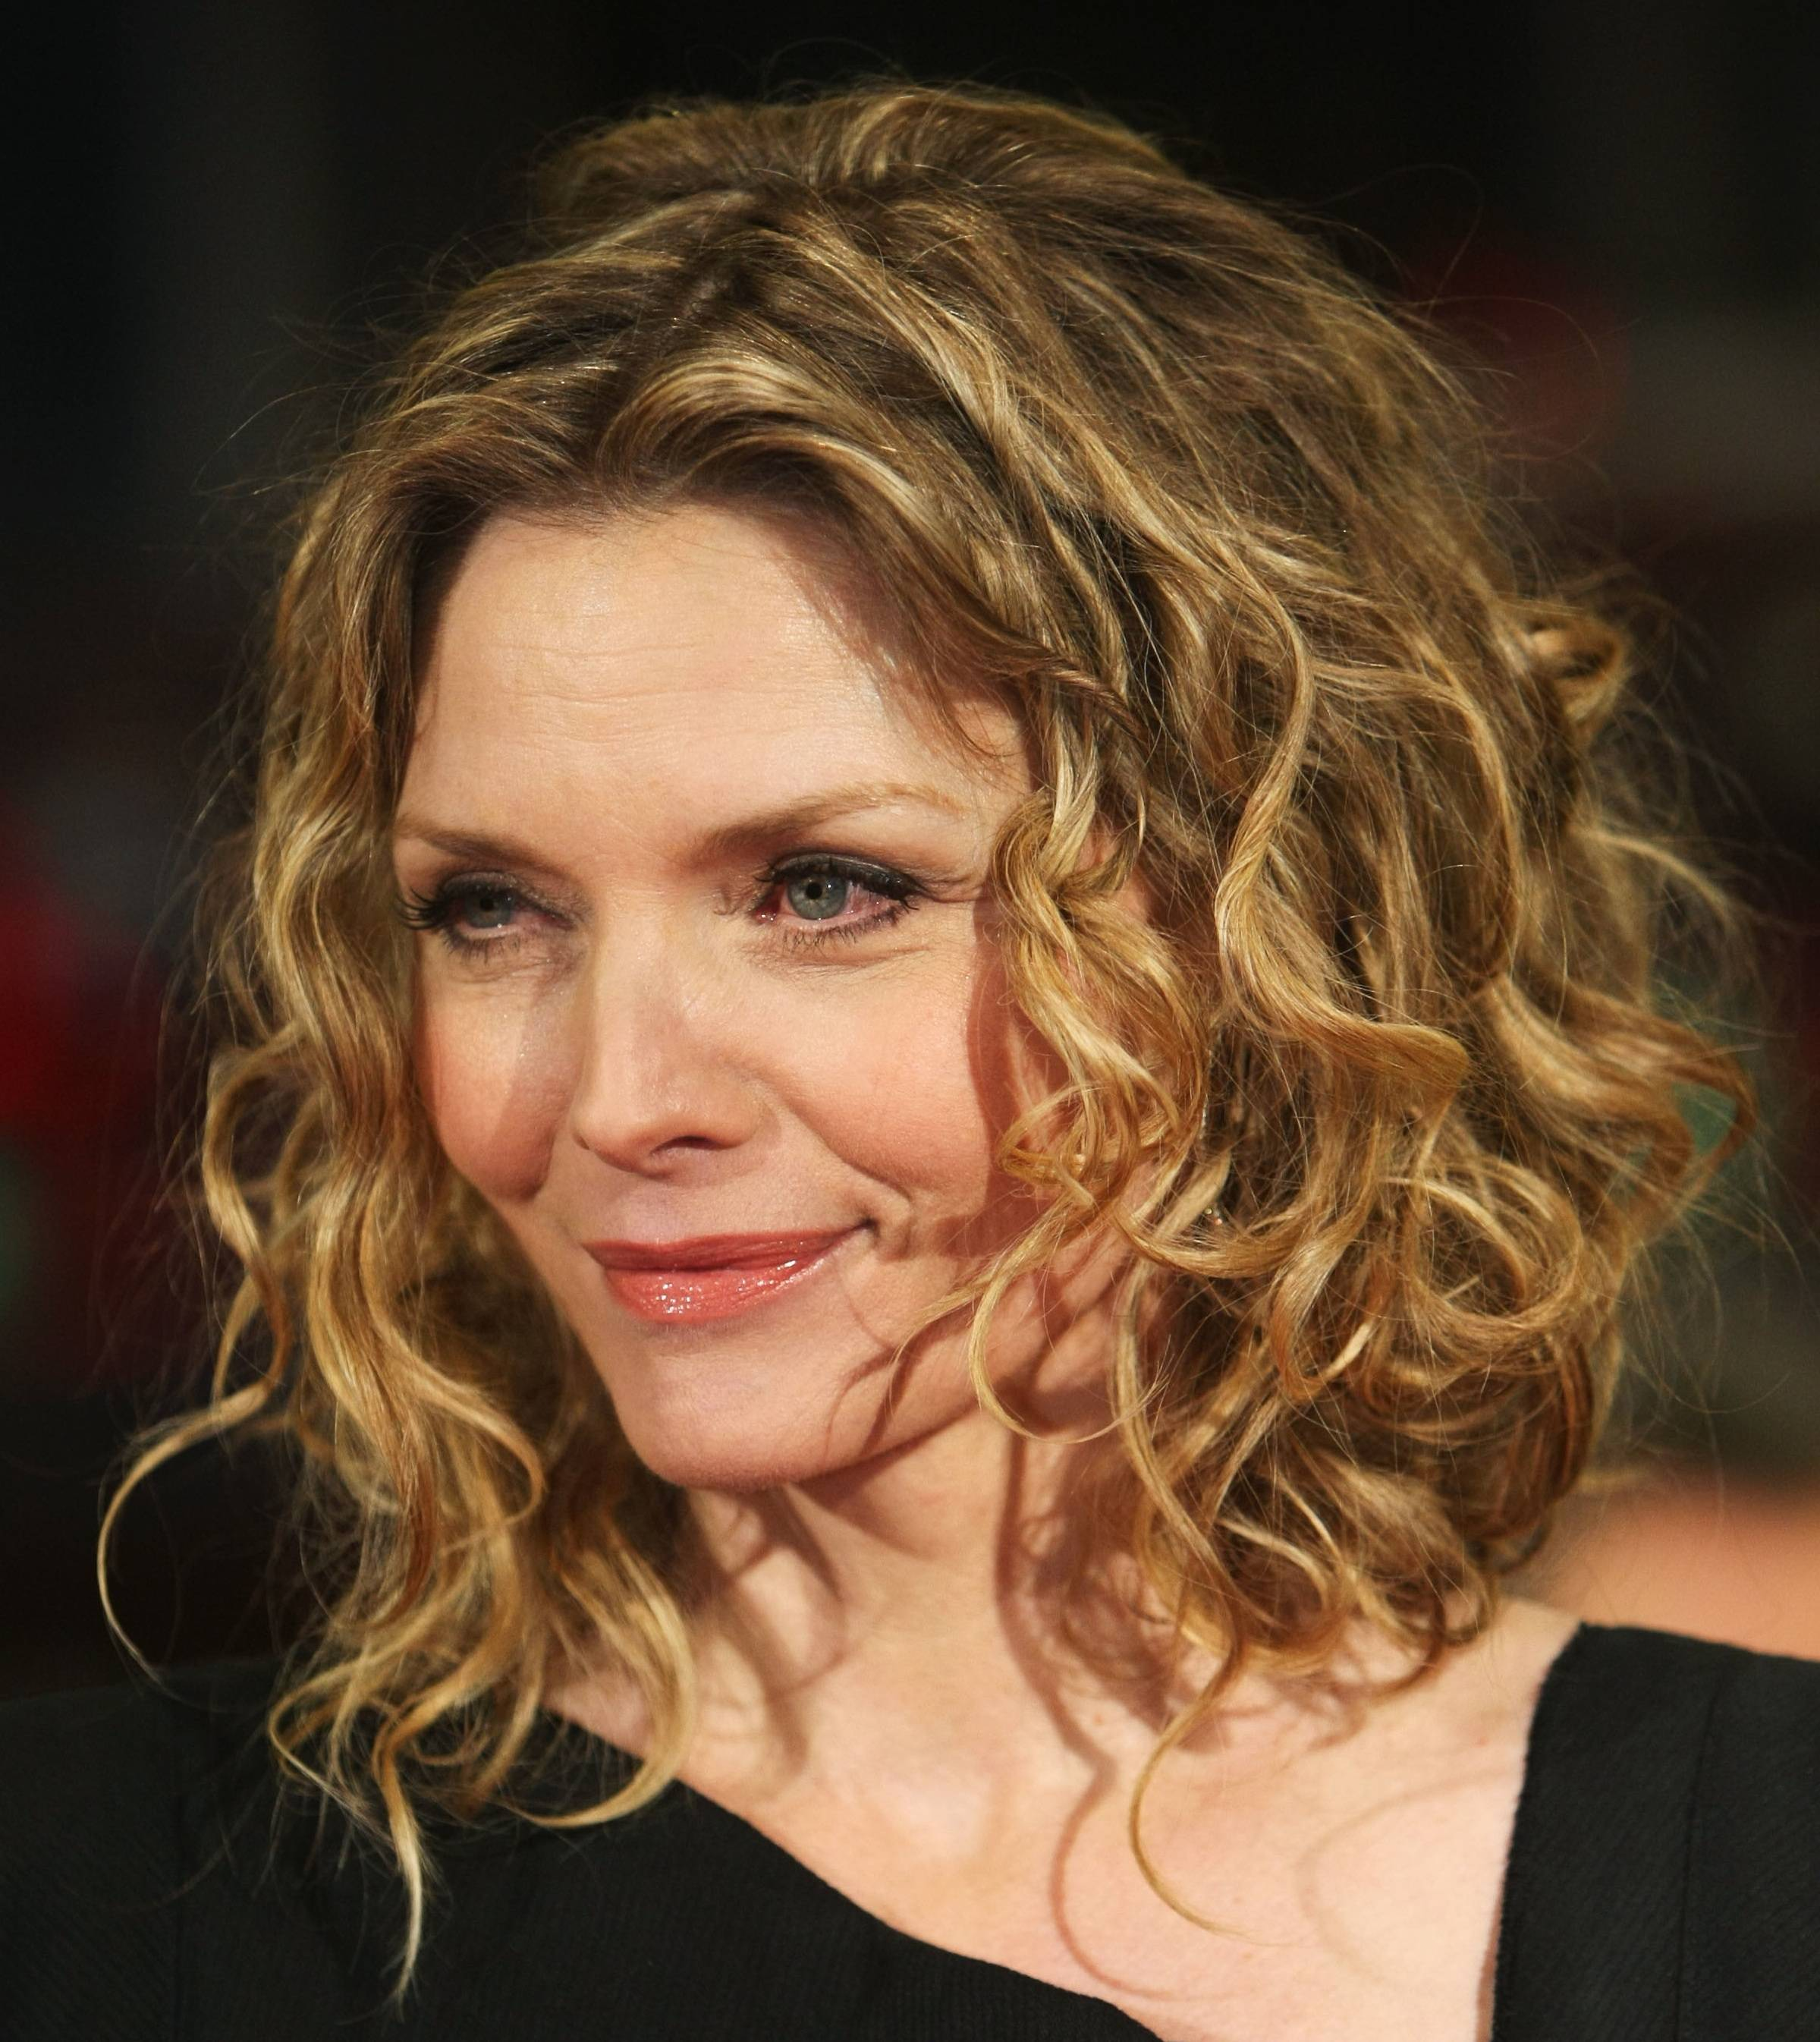 Pin Michelle Pfeiffer Hot Picture Photo on Pinterest